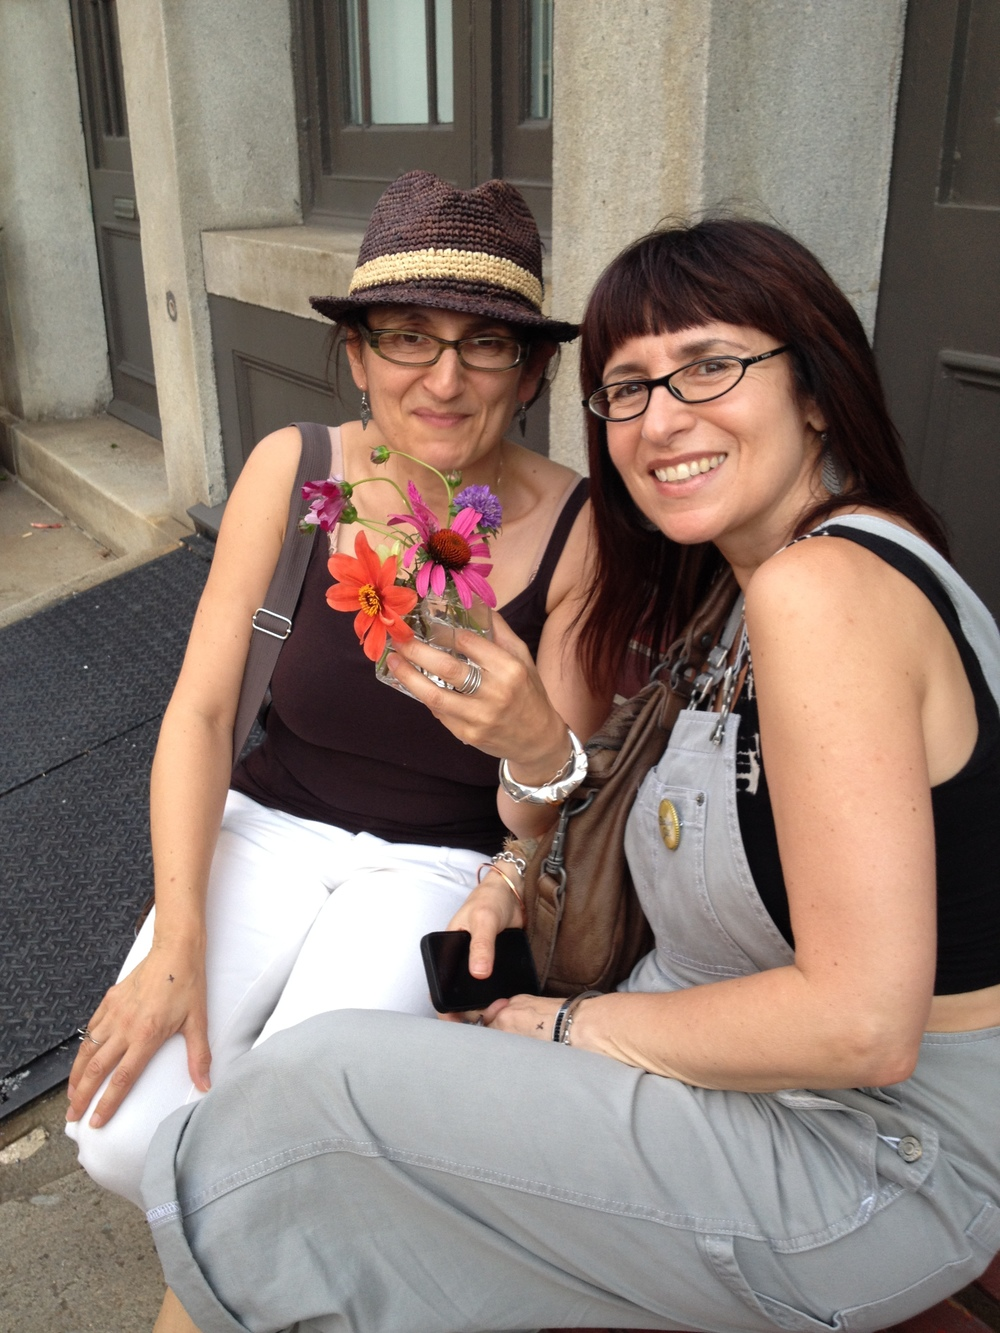 Good times with the owner of  Bus Stop Boutique  Elena Brennan and friend- Chicory Flowers in hand with Bombita Designs Anti-Clastic Silver Citrine Cuff on wrist.